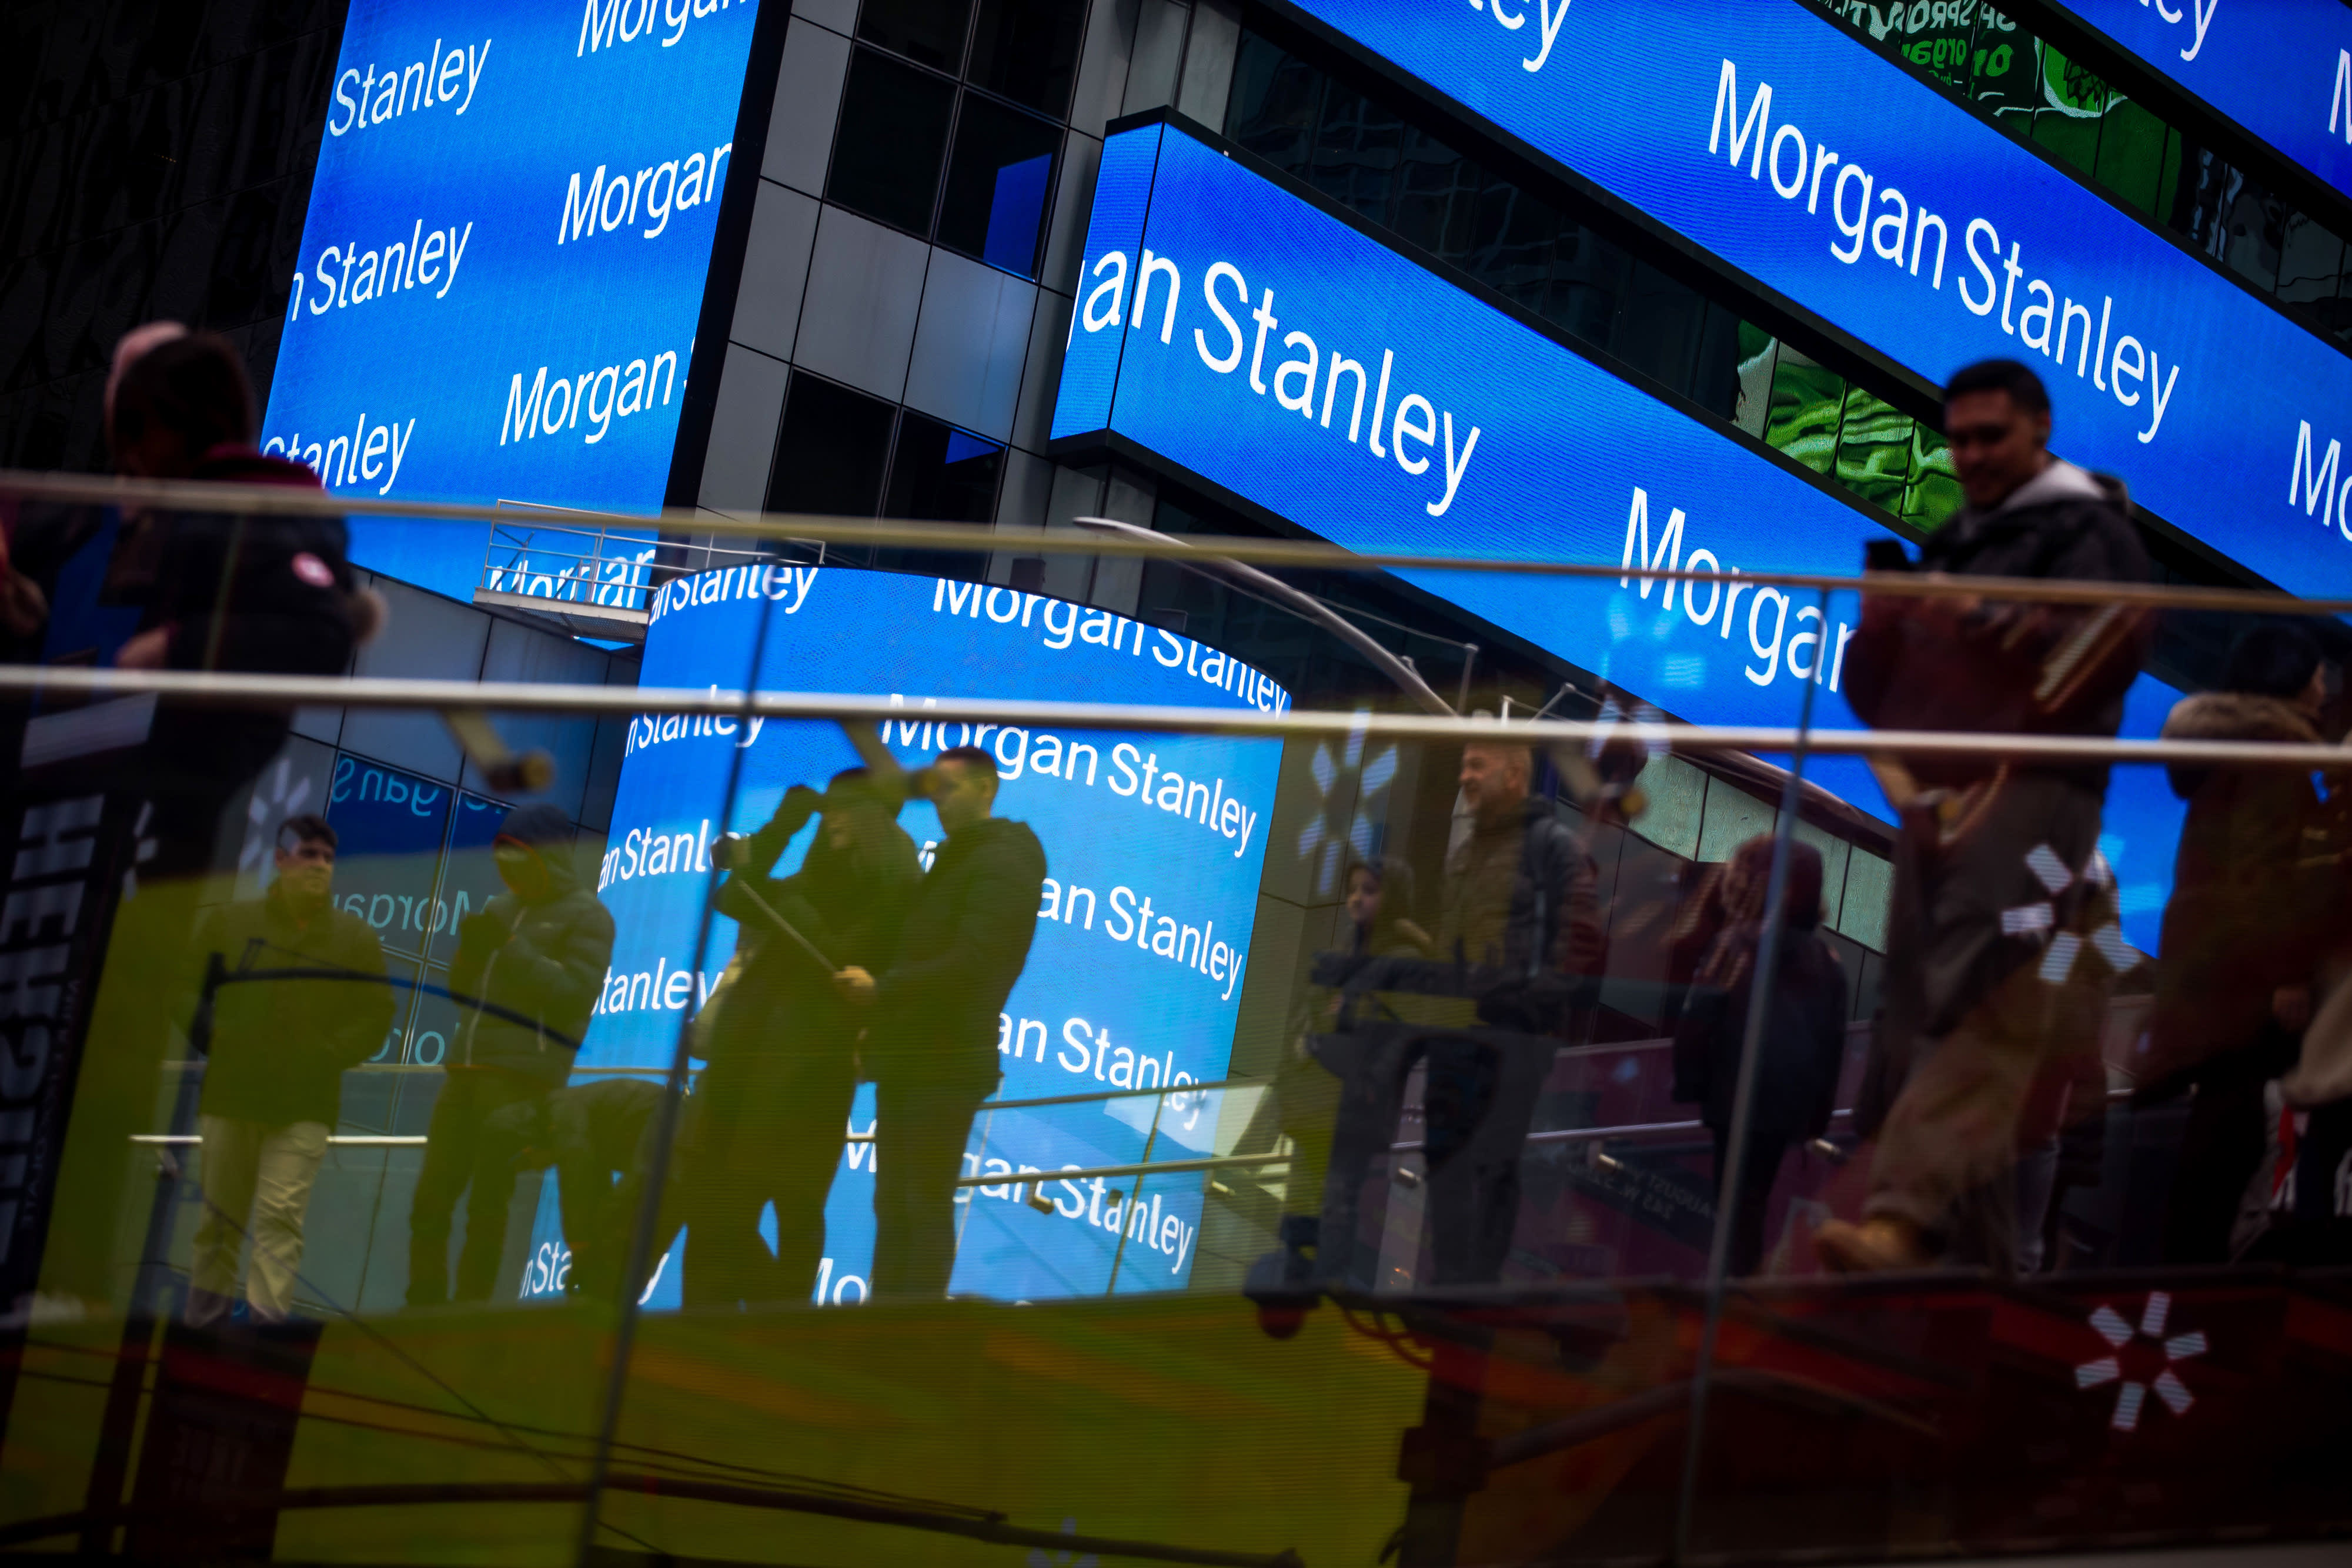 Morgan Stanley is cutting jobs due to uncertain global environment, sources say